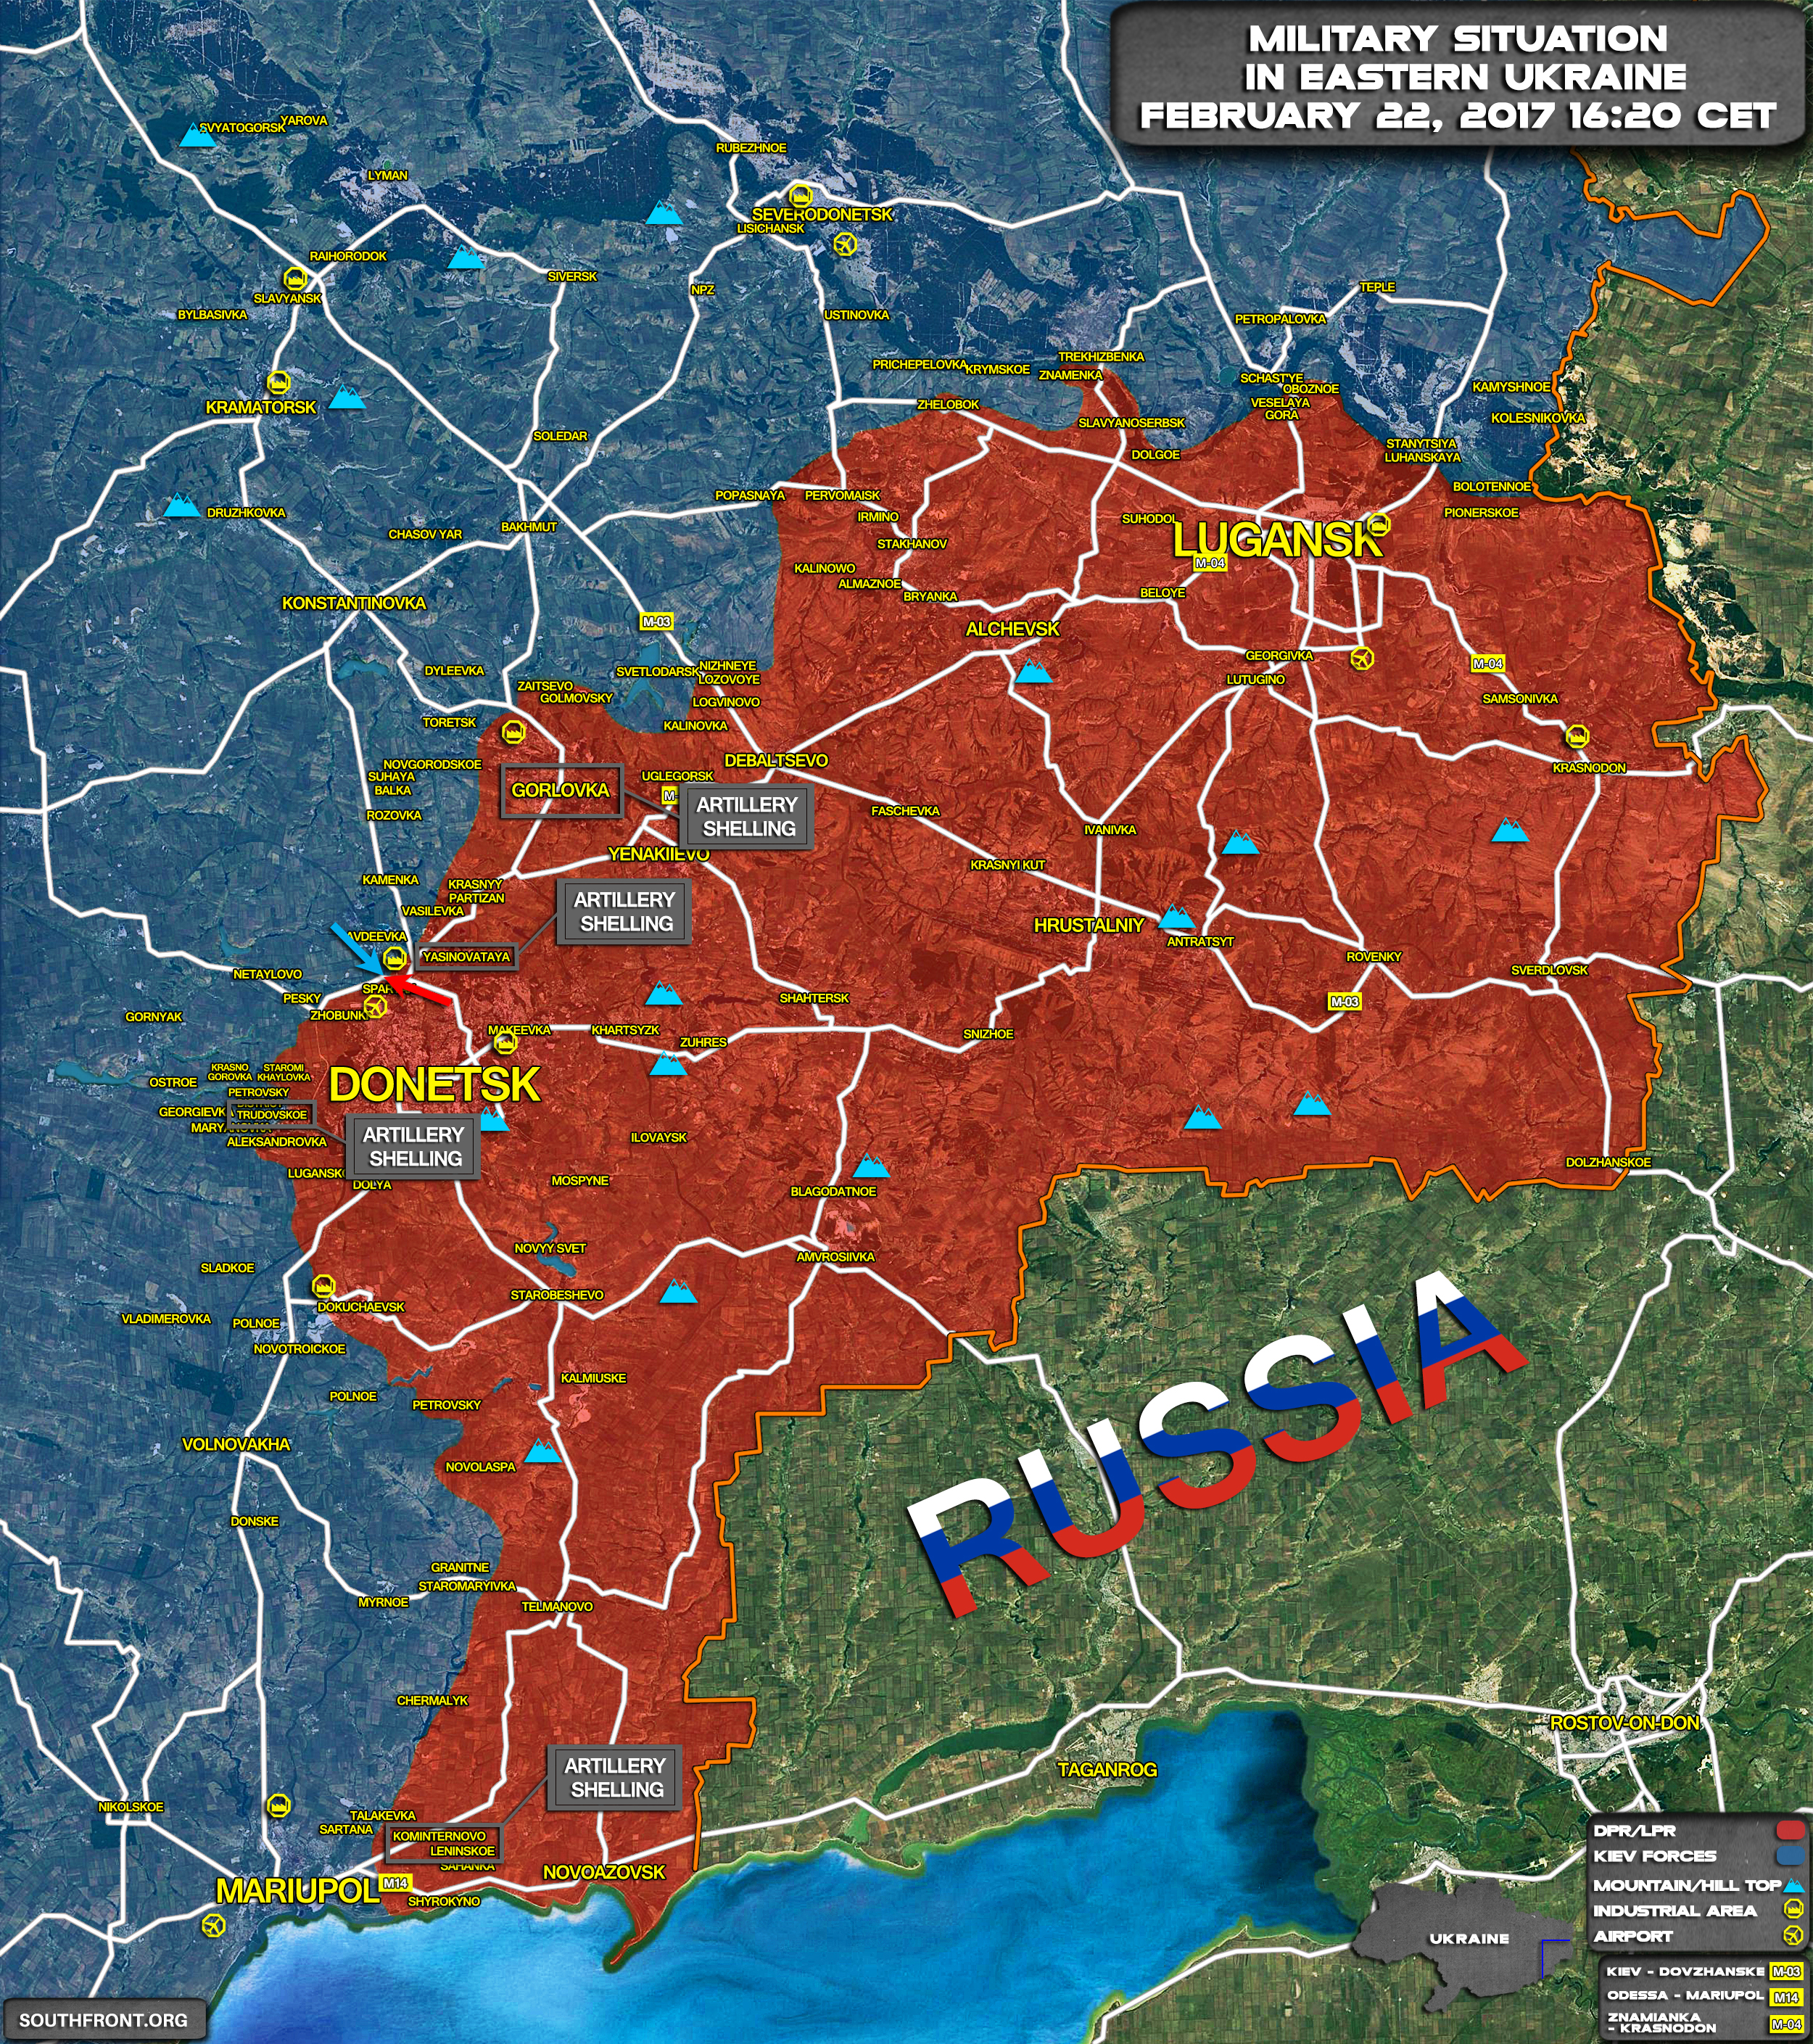 Situation in eastern ukraine on february 22 2017 map update military situation in eastern ukraine on february 22 2017 map update sciox Image collections